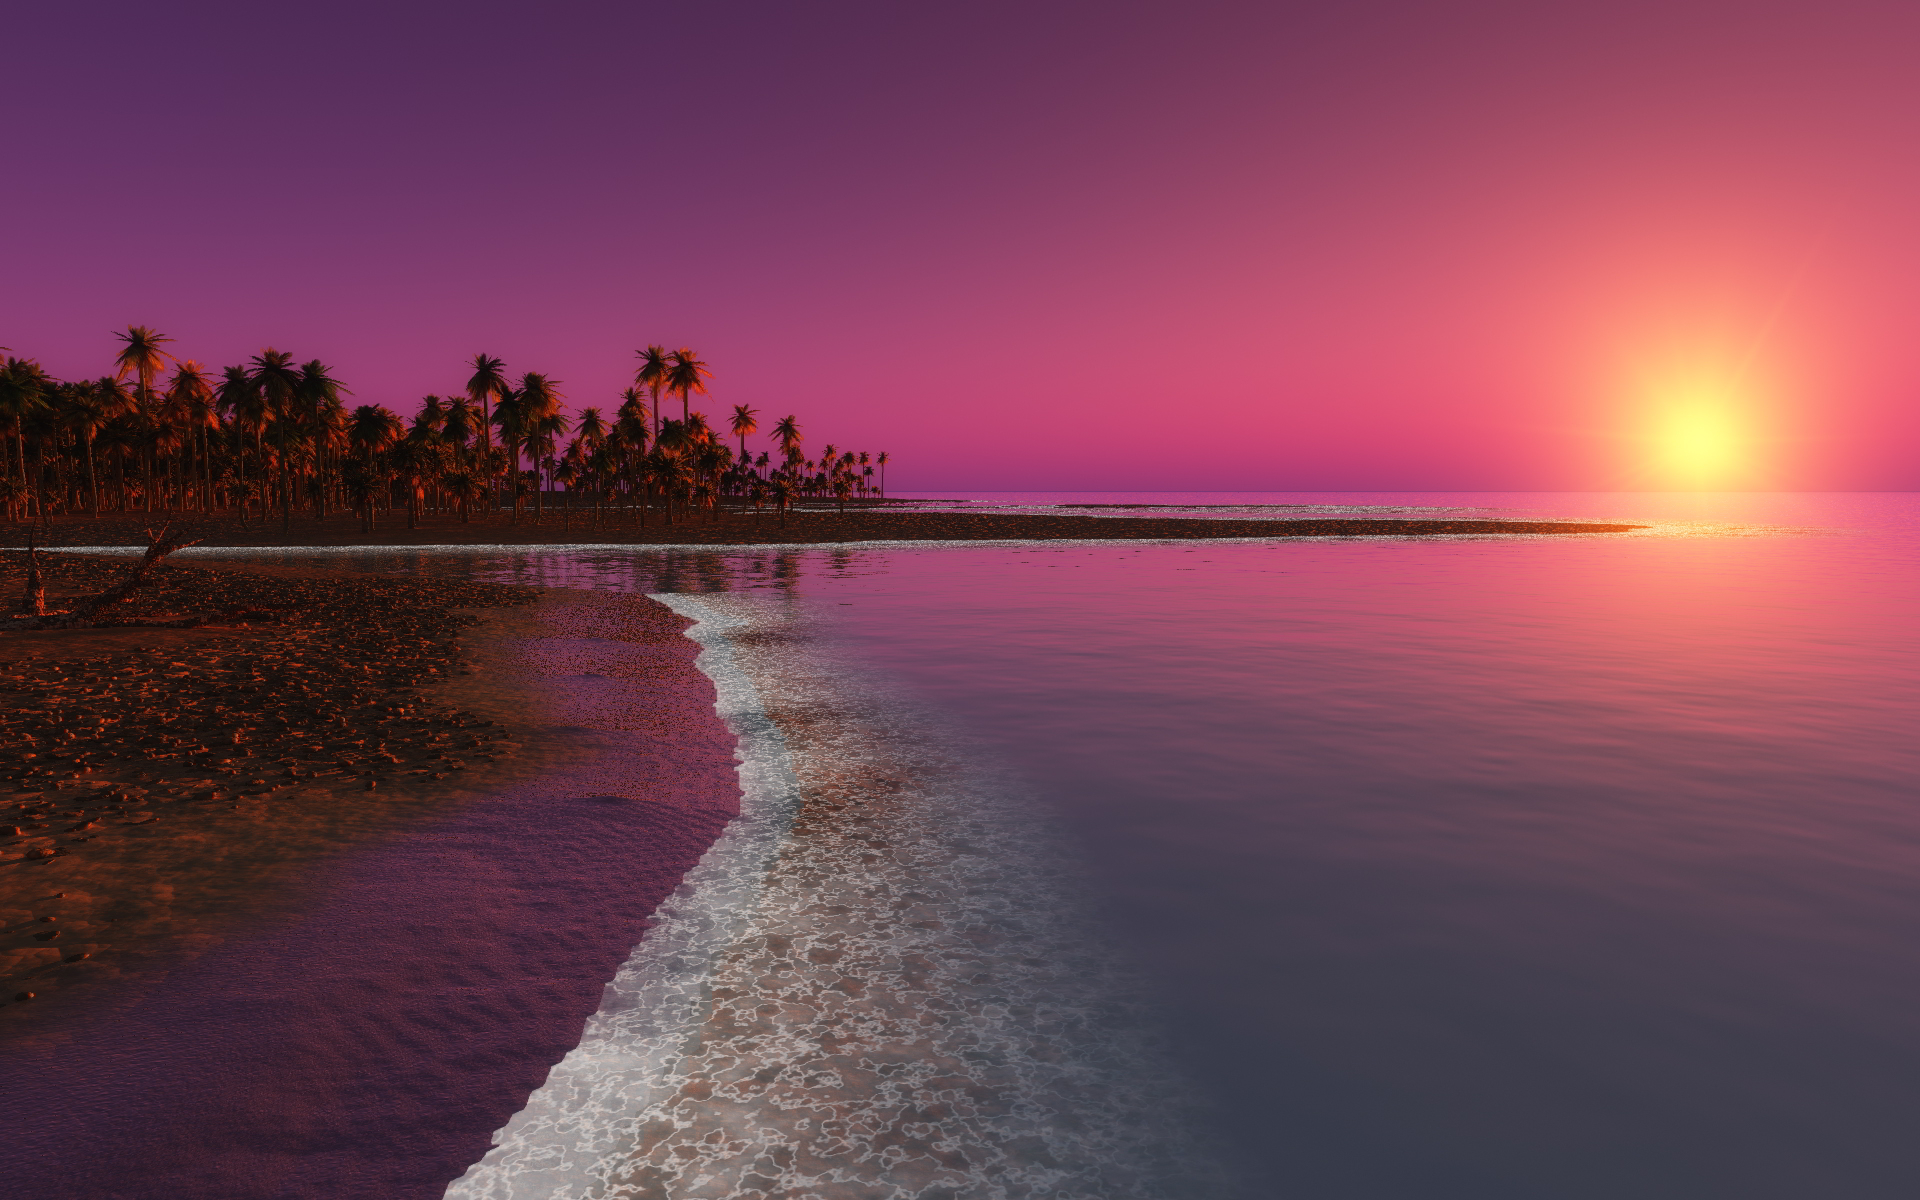 sunset pictures fantasy